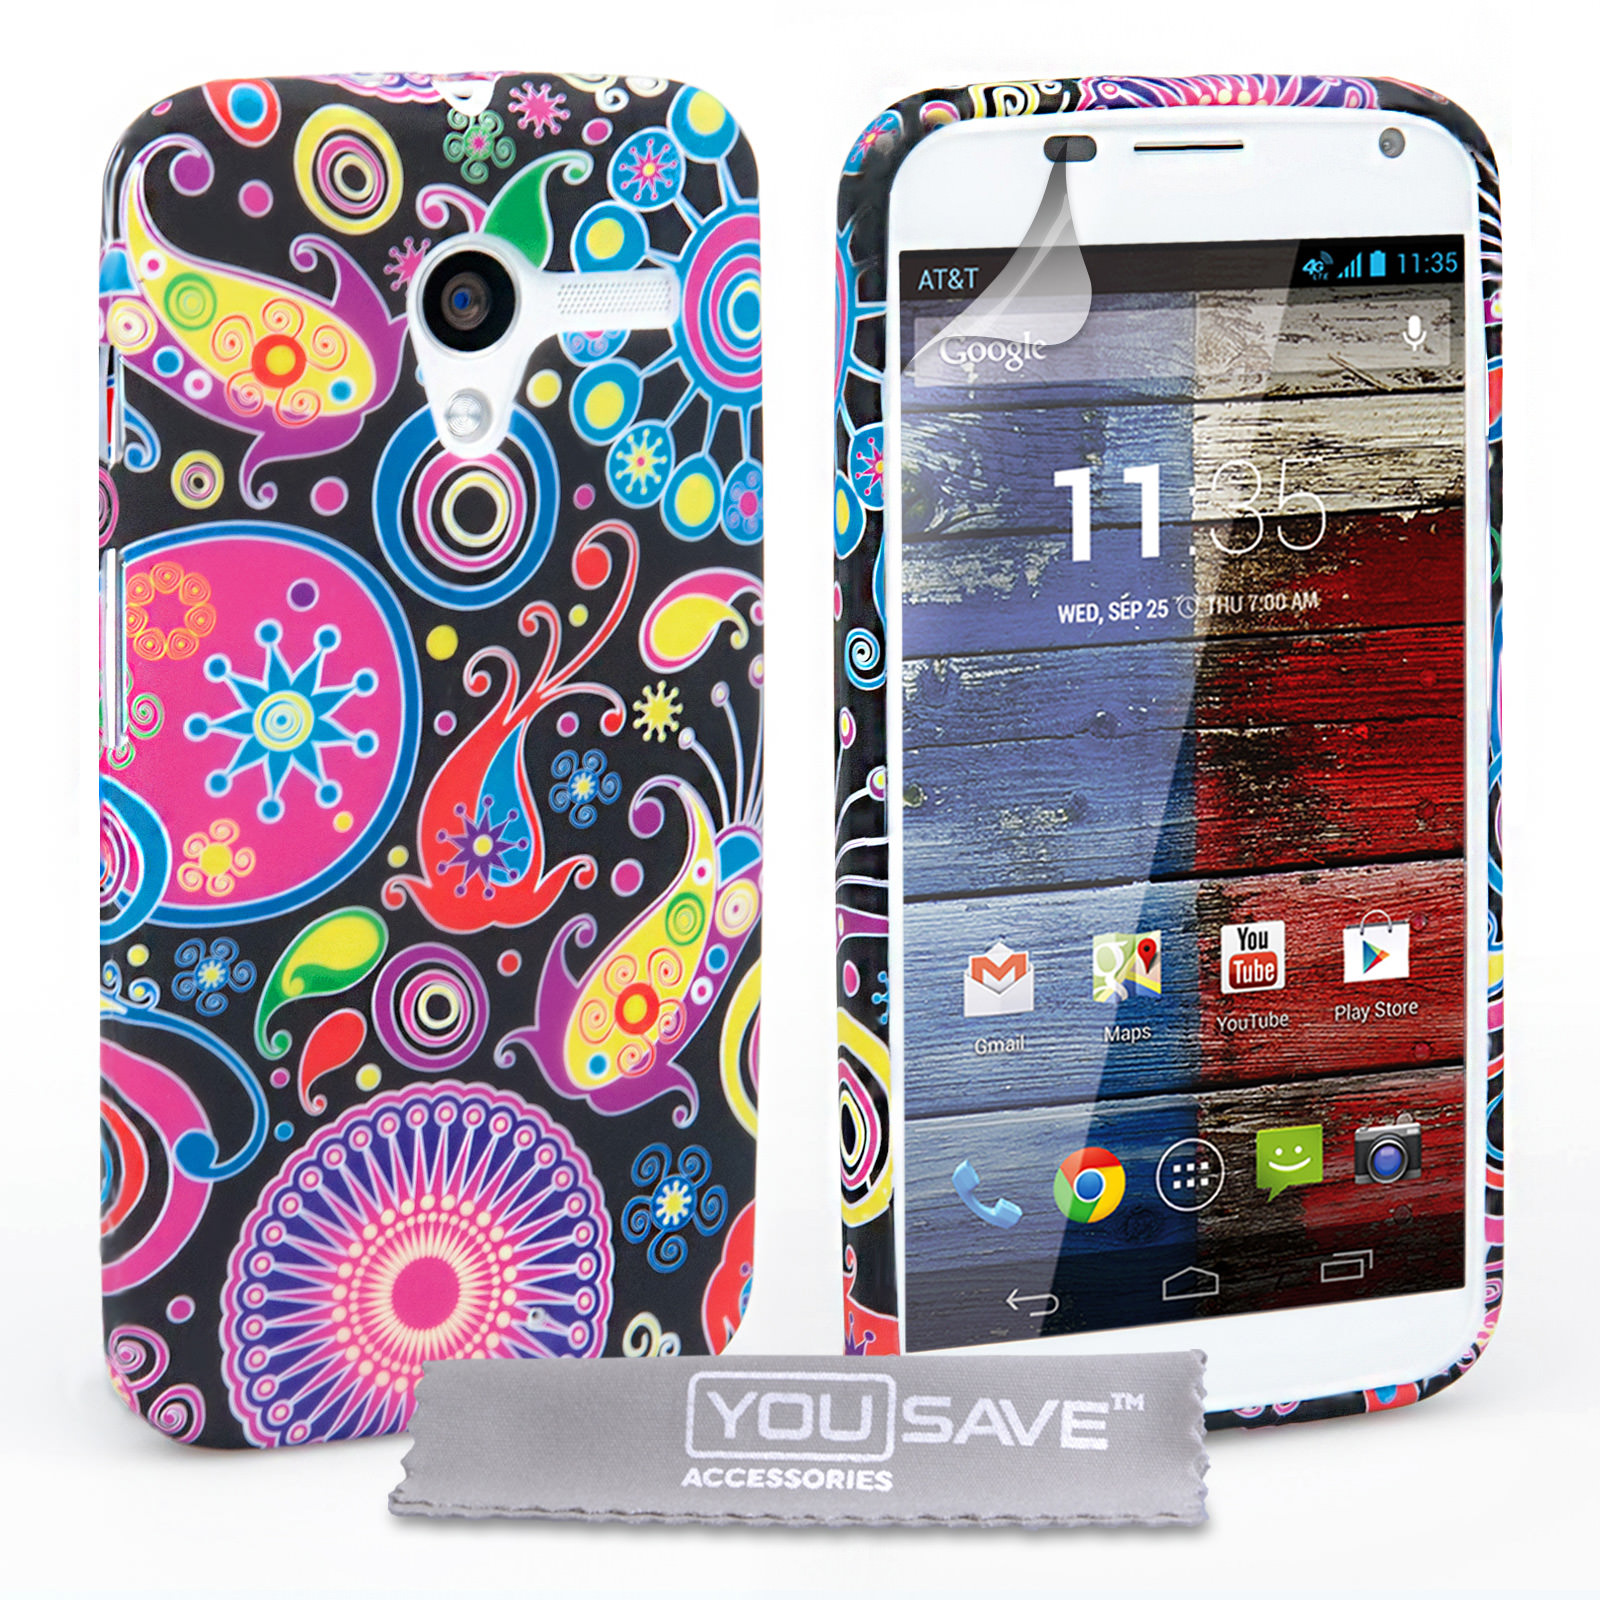 YouSave Accessories Motorola Moto X Jellyfish Silicone Gel Case